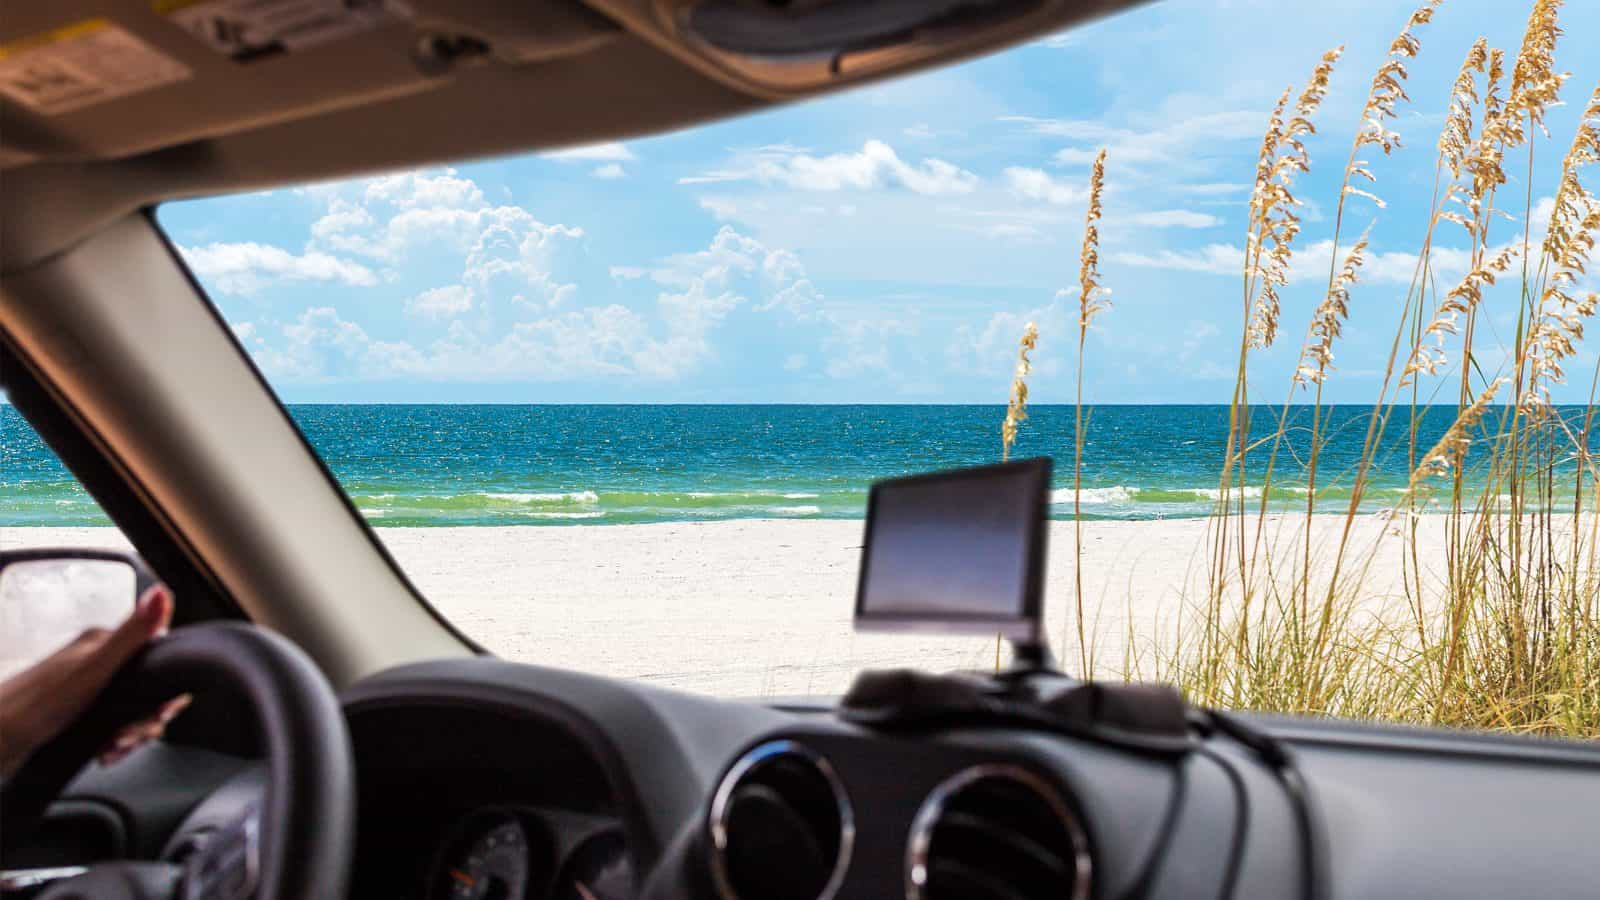 A GPS sits on the dashboard of a car overlooking the beach, ready for a Florida road trip.